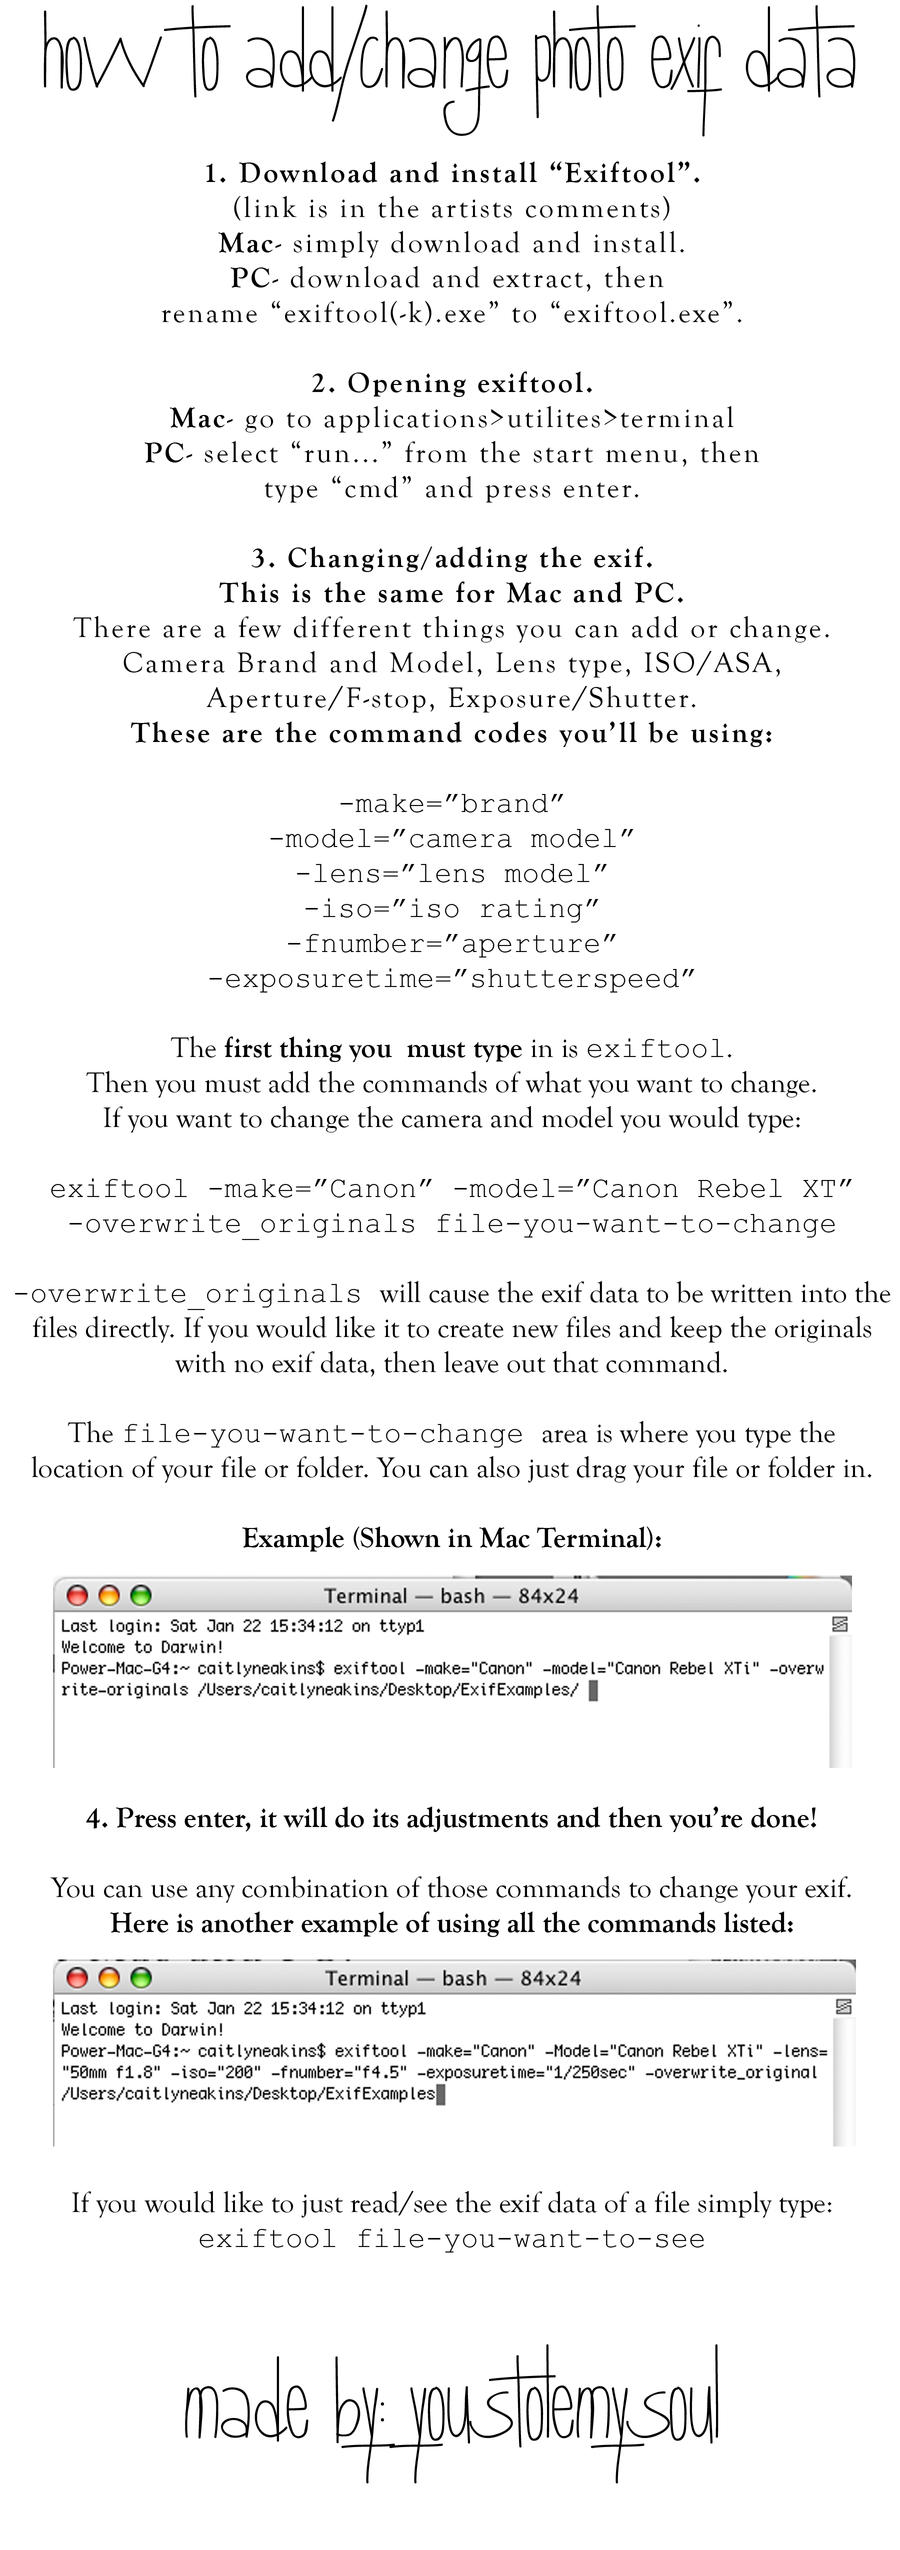 How to Change-Add Exif Data by youstolemysoul2 on DeviantArt